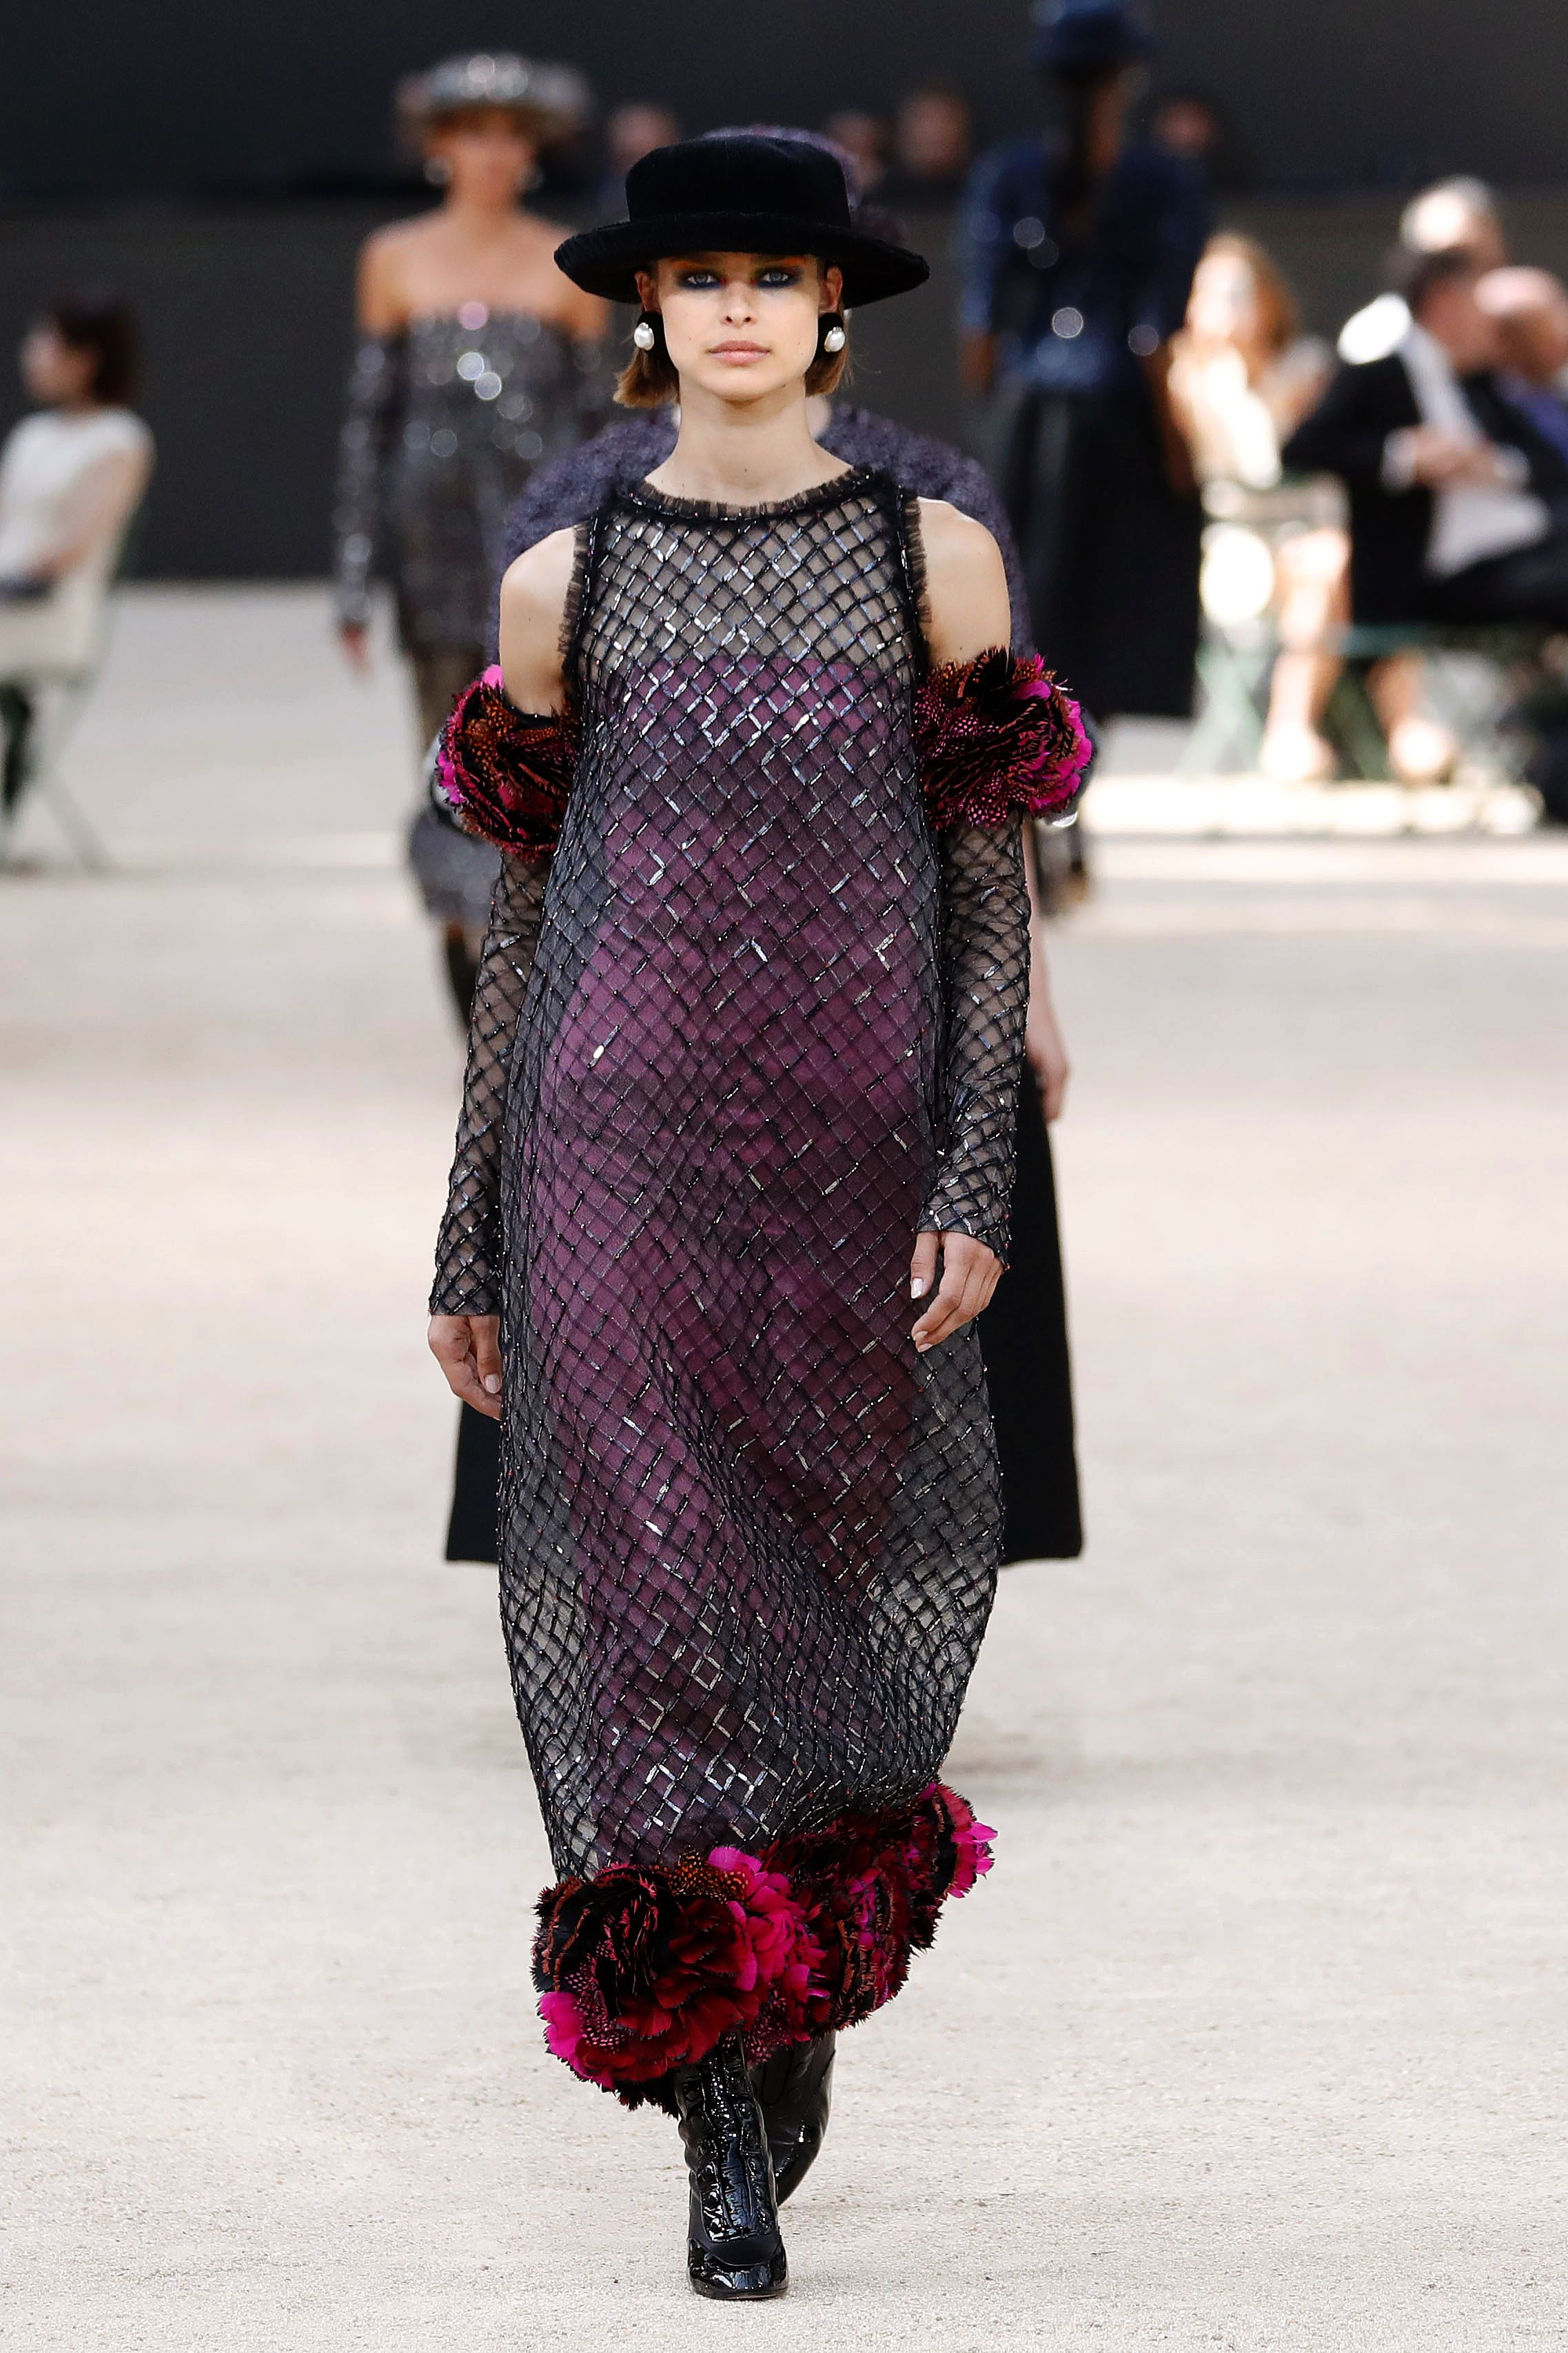 Chanel Fall 2017 Couture catwalk 2